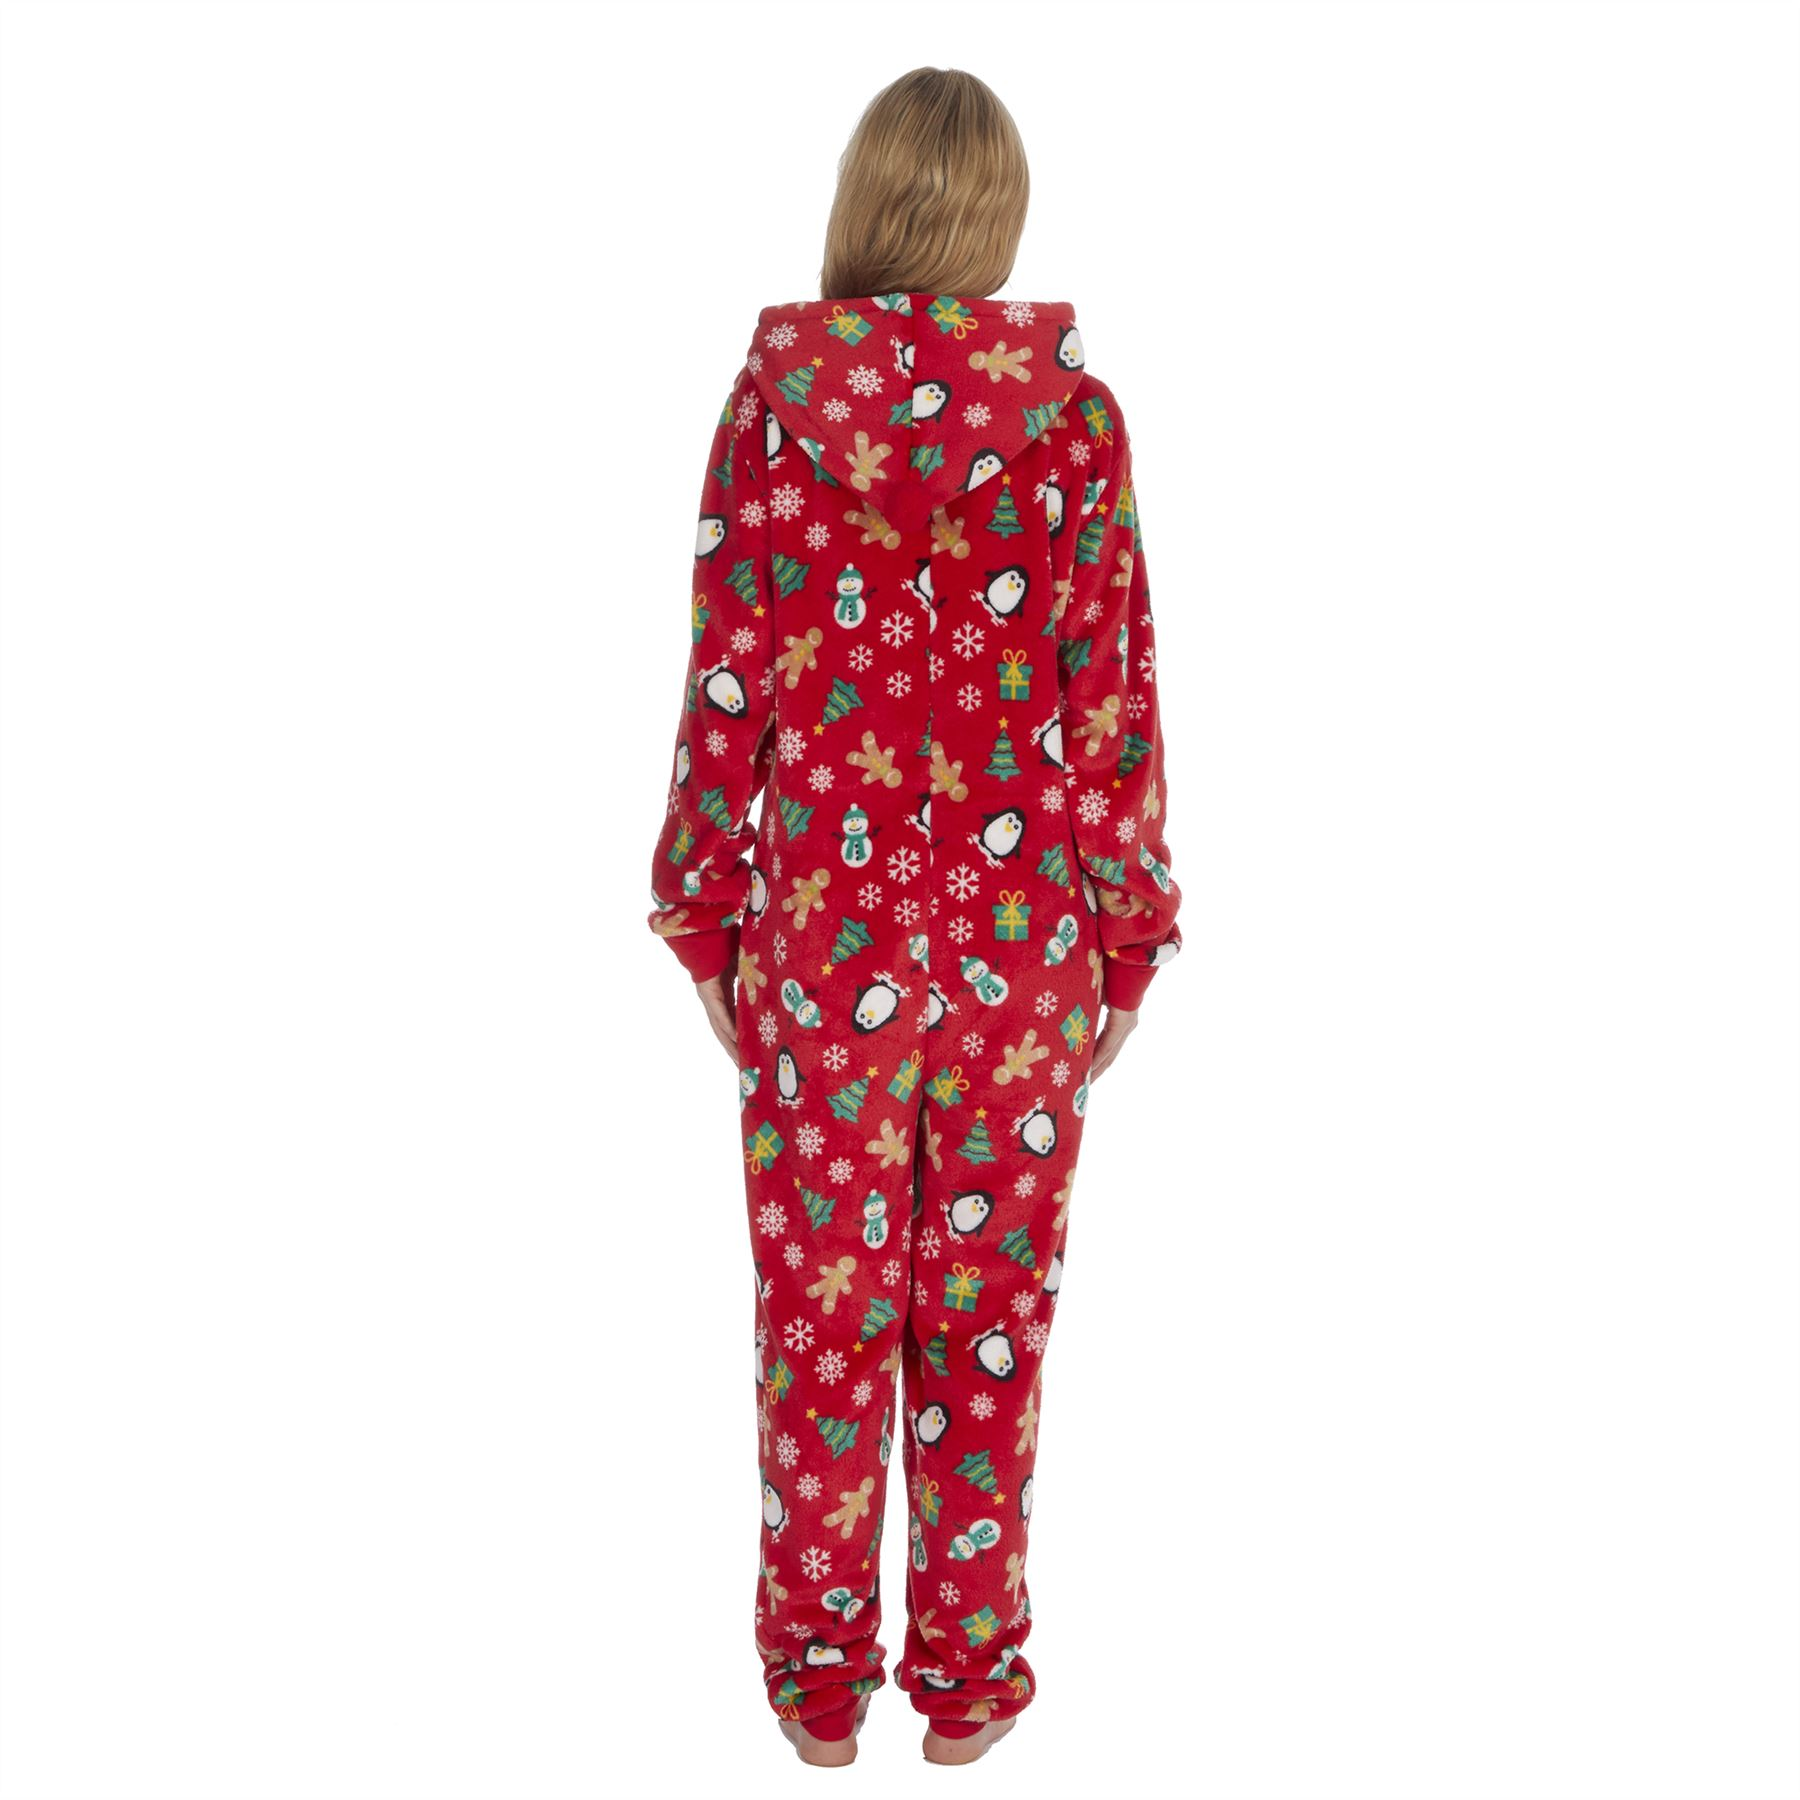 Ladies-Womens-Girls-Fleece-All-In-One-Pyjamas-Outfit-Jumpsuit-Costume-Size-6-18 thumbnail 54